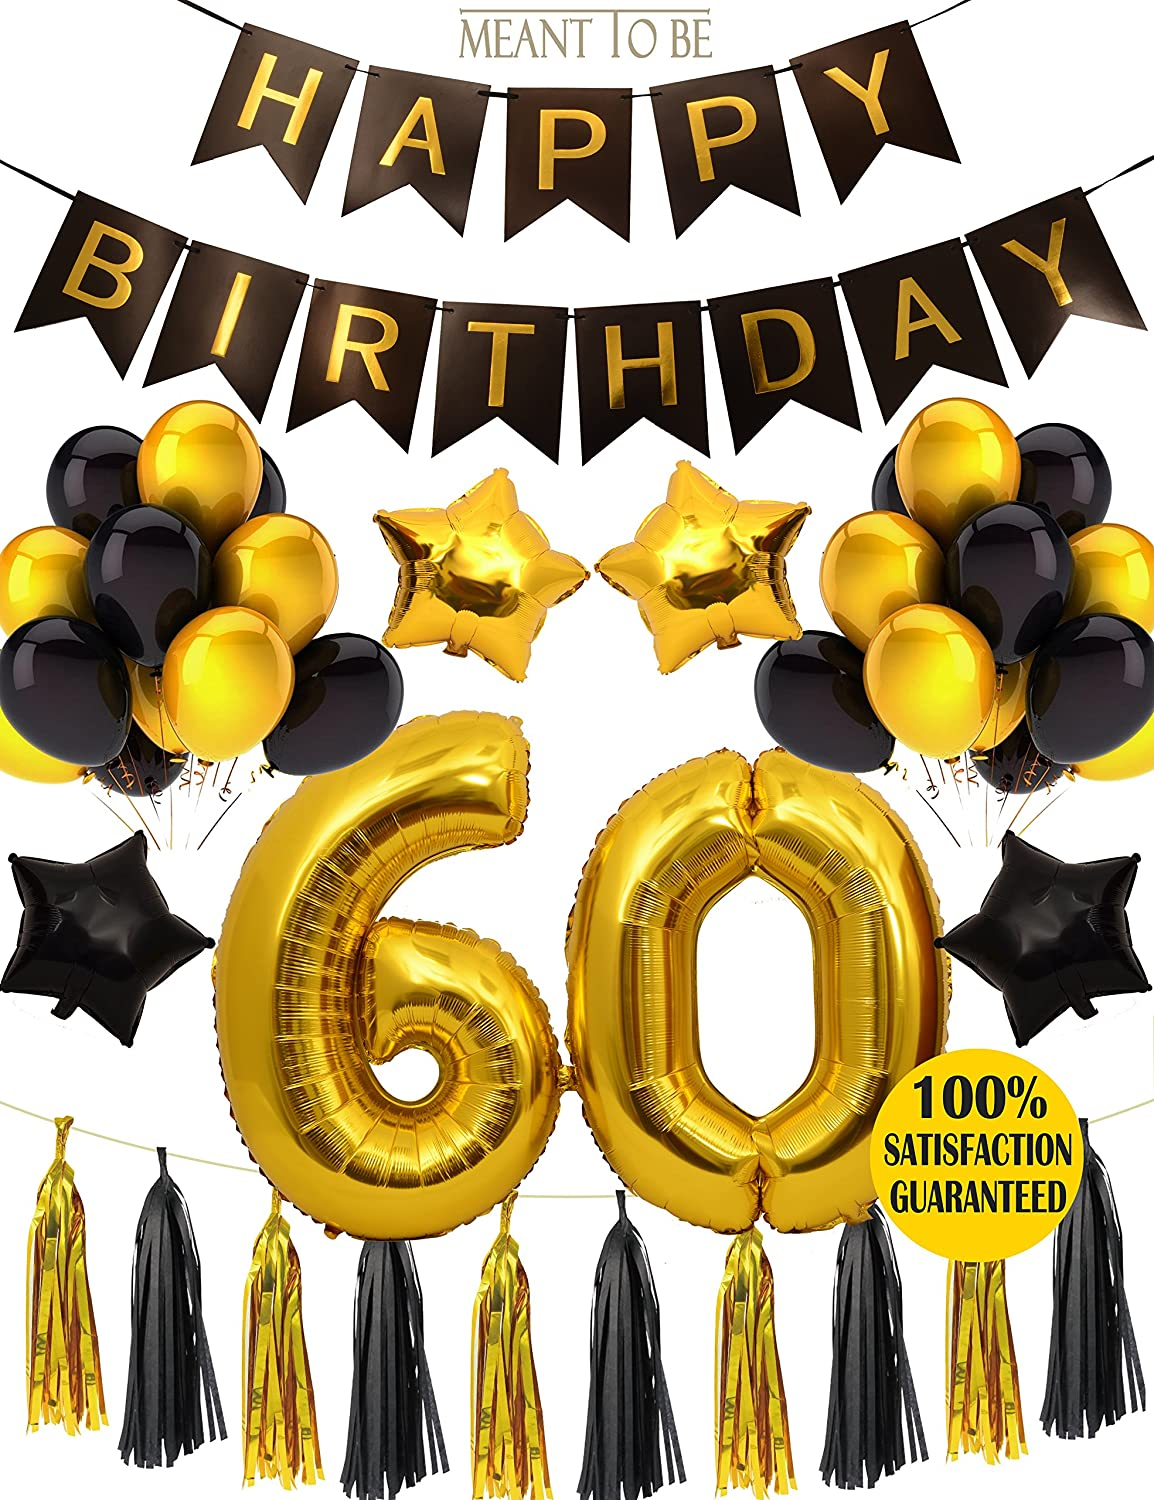 60%OFF 60th BIRTHDAY PARTY DECORATIONS KIT, 60th Birthday Party ...